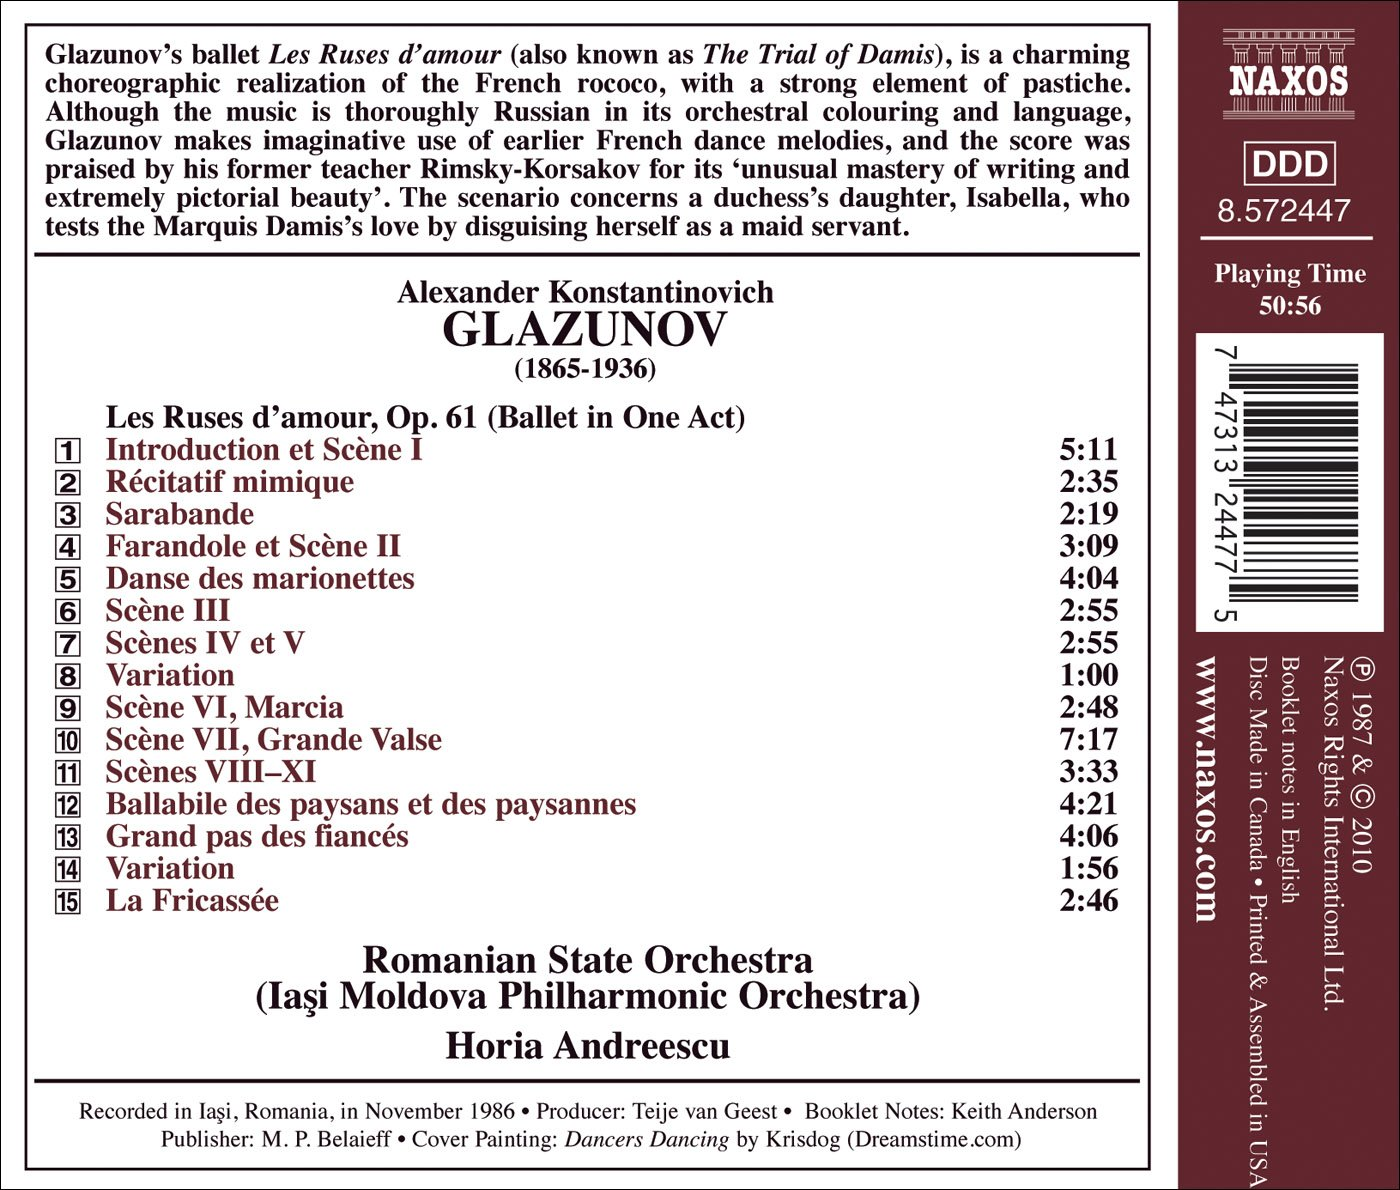 Orchestral Edition 19: Les Ruses D'amour